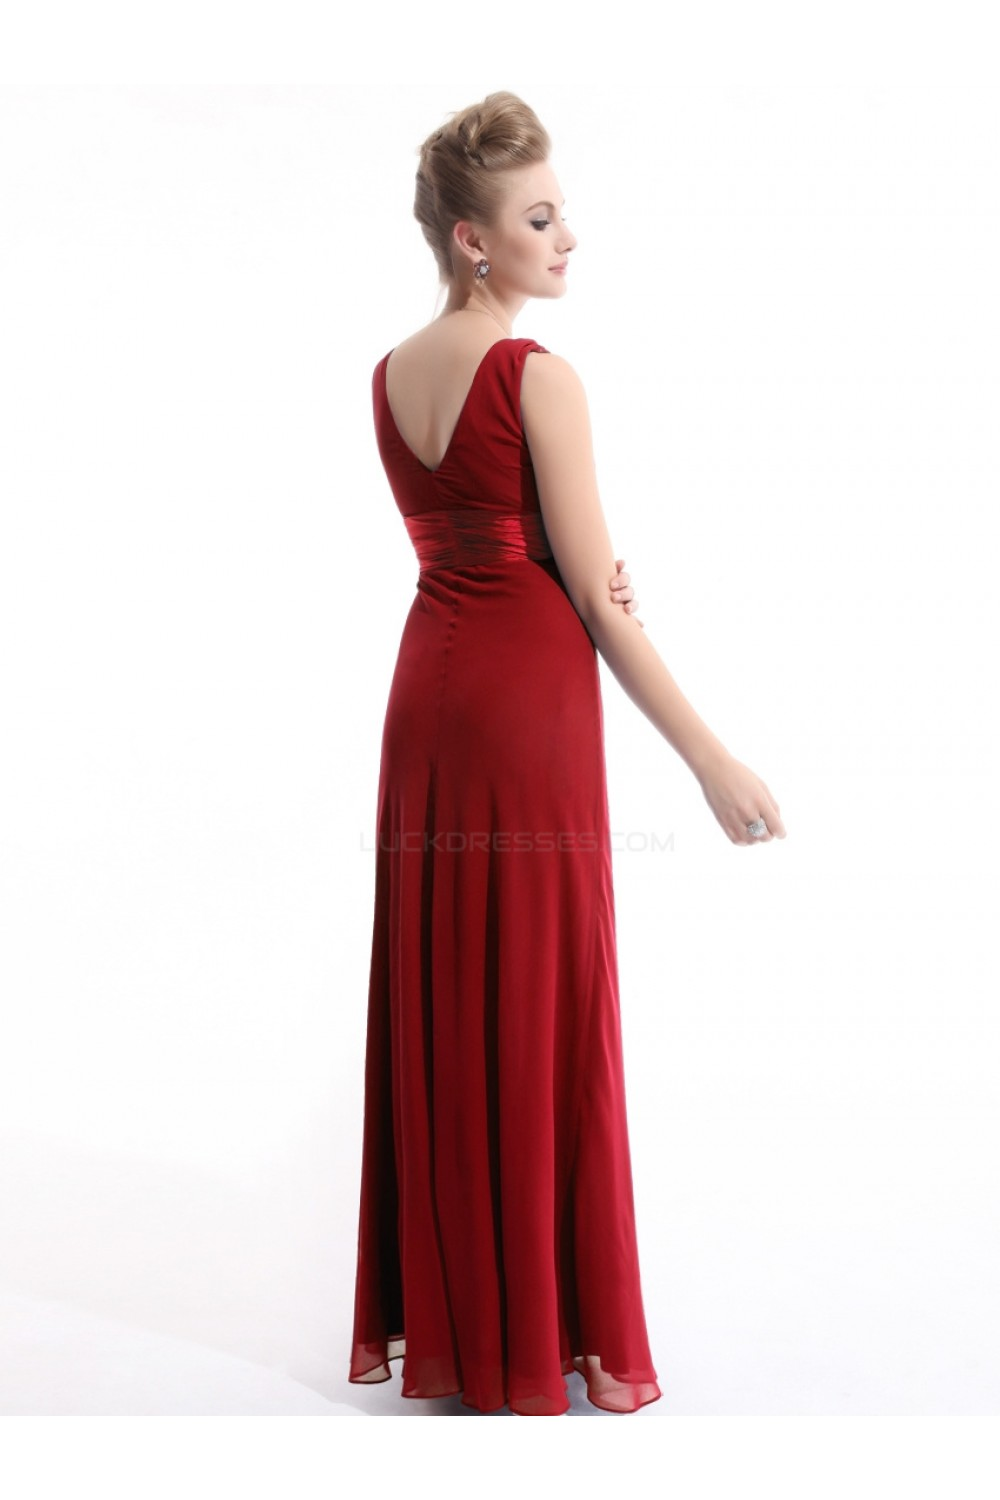 V neck long red chiffon bridesmaid dressesevening dresses bd010267 sheath v neck long red chiffon bridesmaid dressesevening dresses bd010267 ombrellifo Image collections